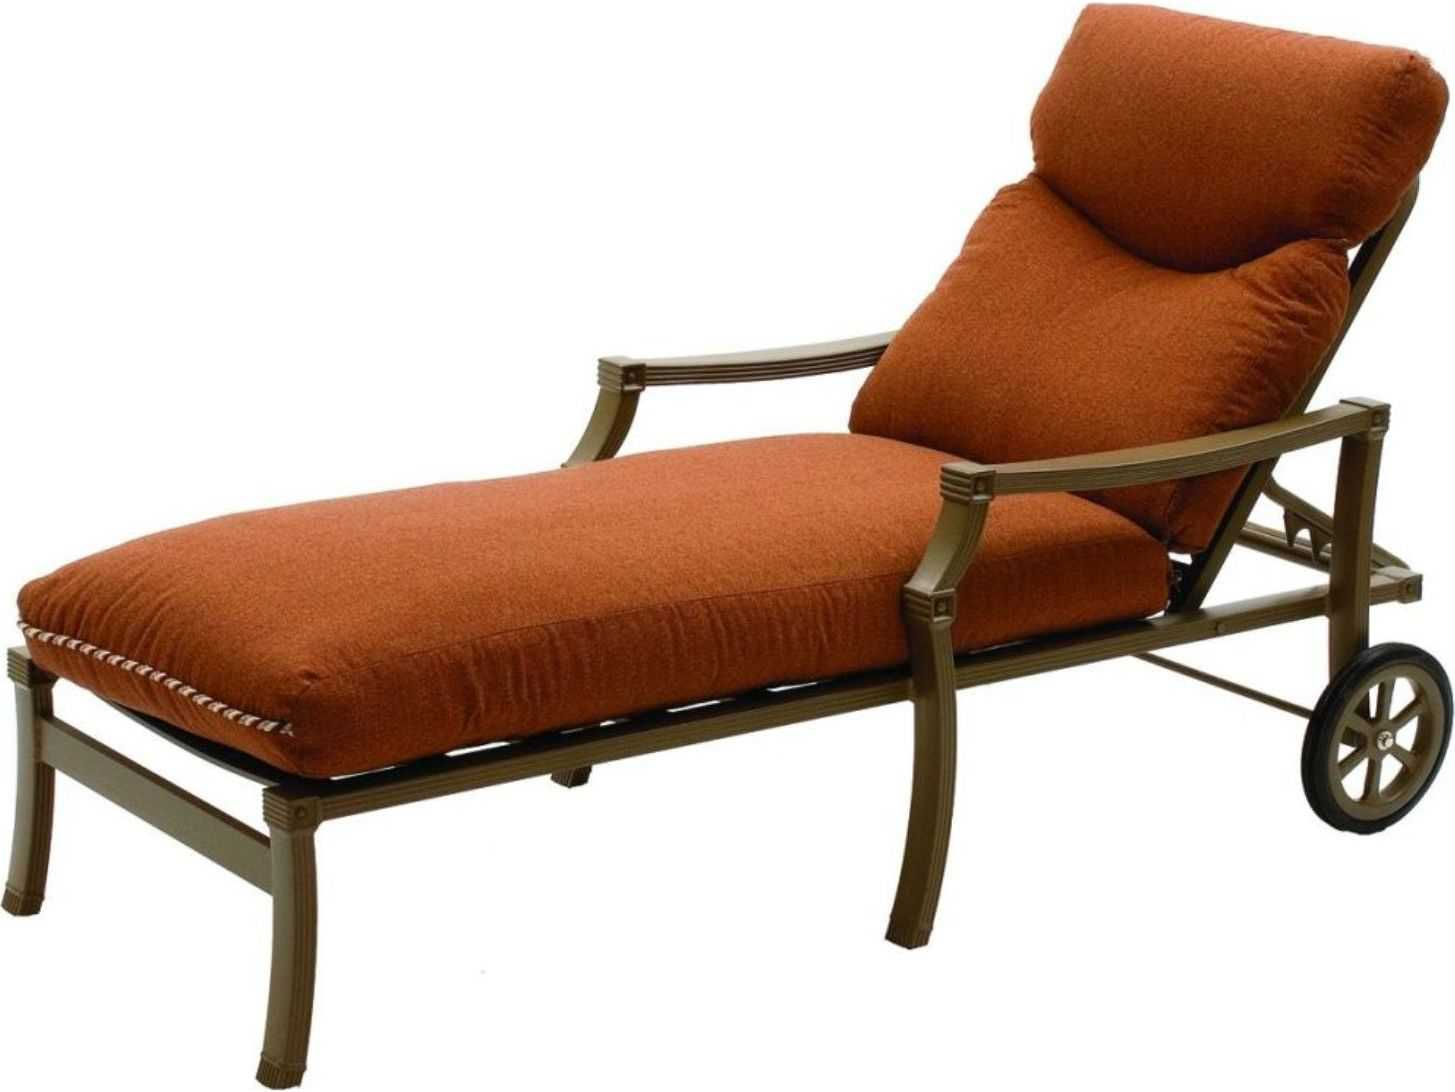 metal lounge chair with wheels used banquet chairs for sale suncoast devereaux cushion cast aluminum arm chaise 5713